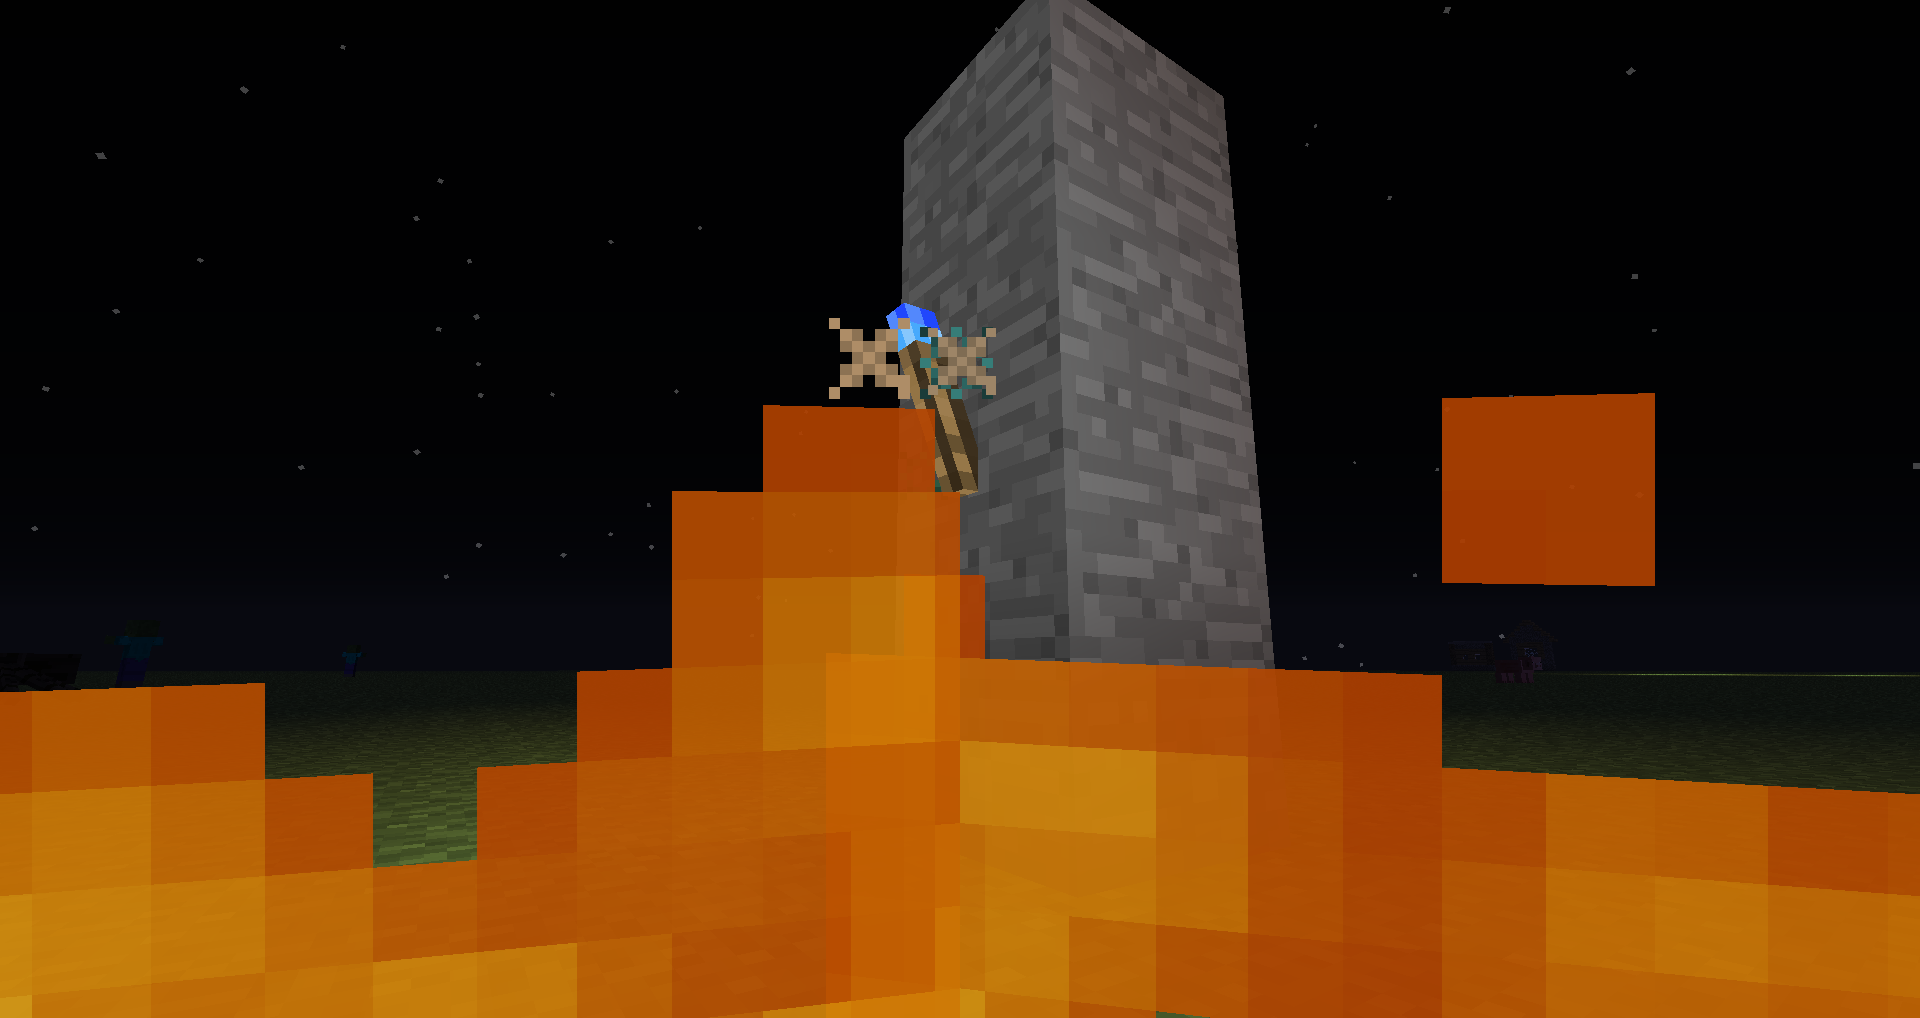 http://minecraft-forum.net/wp-content/uploads/2013/05/6e1bf__Suntorch-Mod-2.png